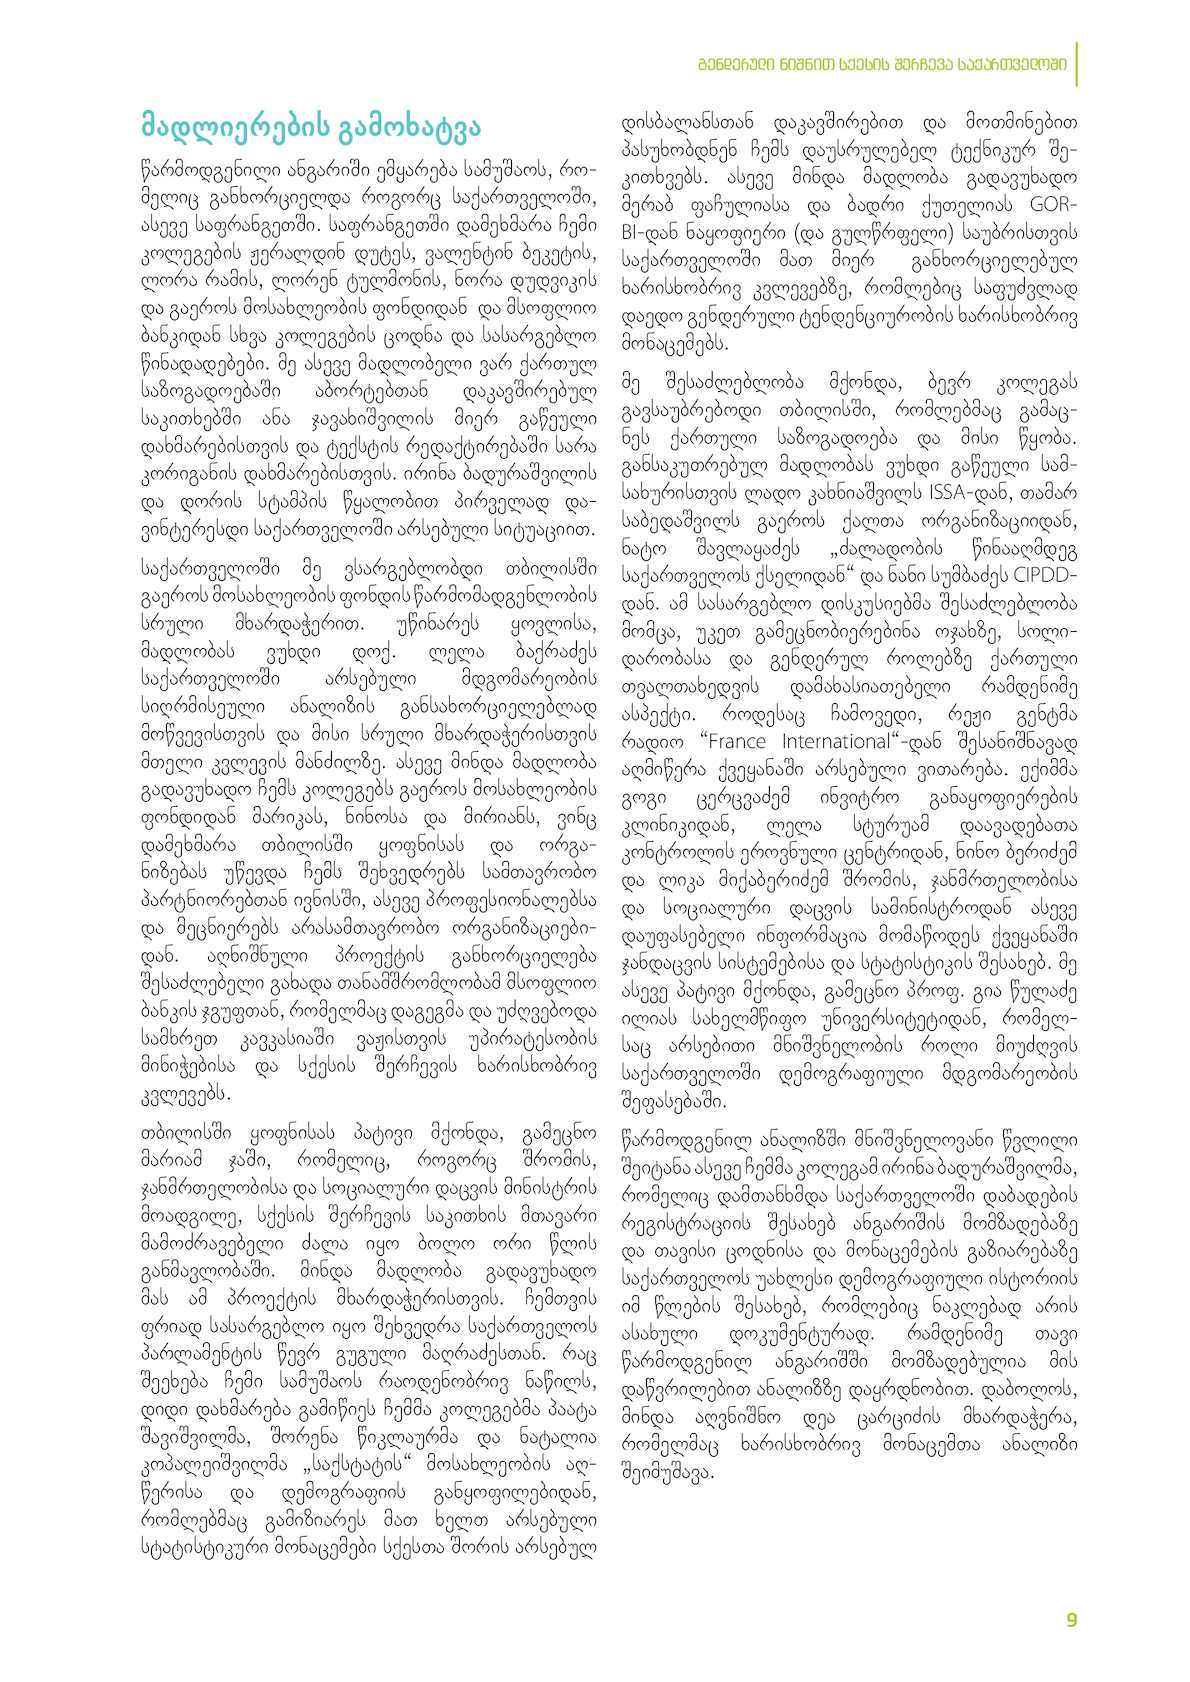 Page 9